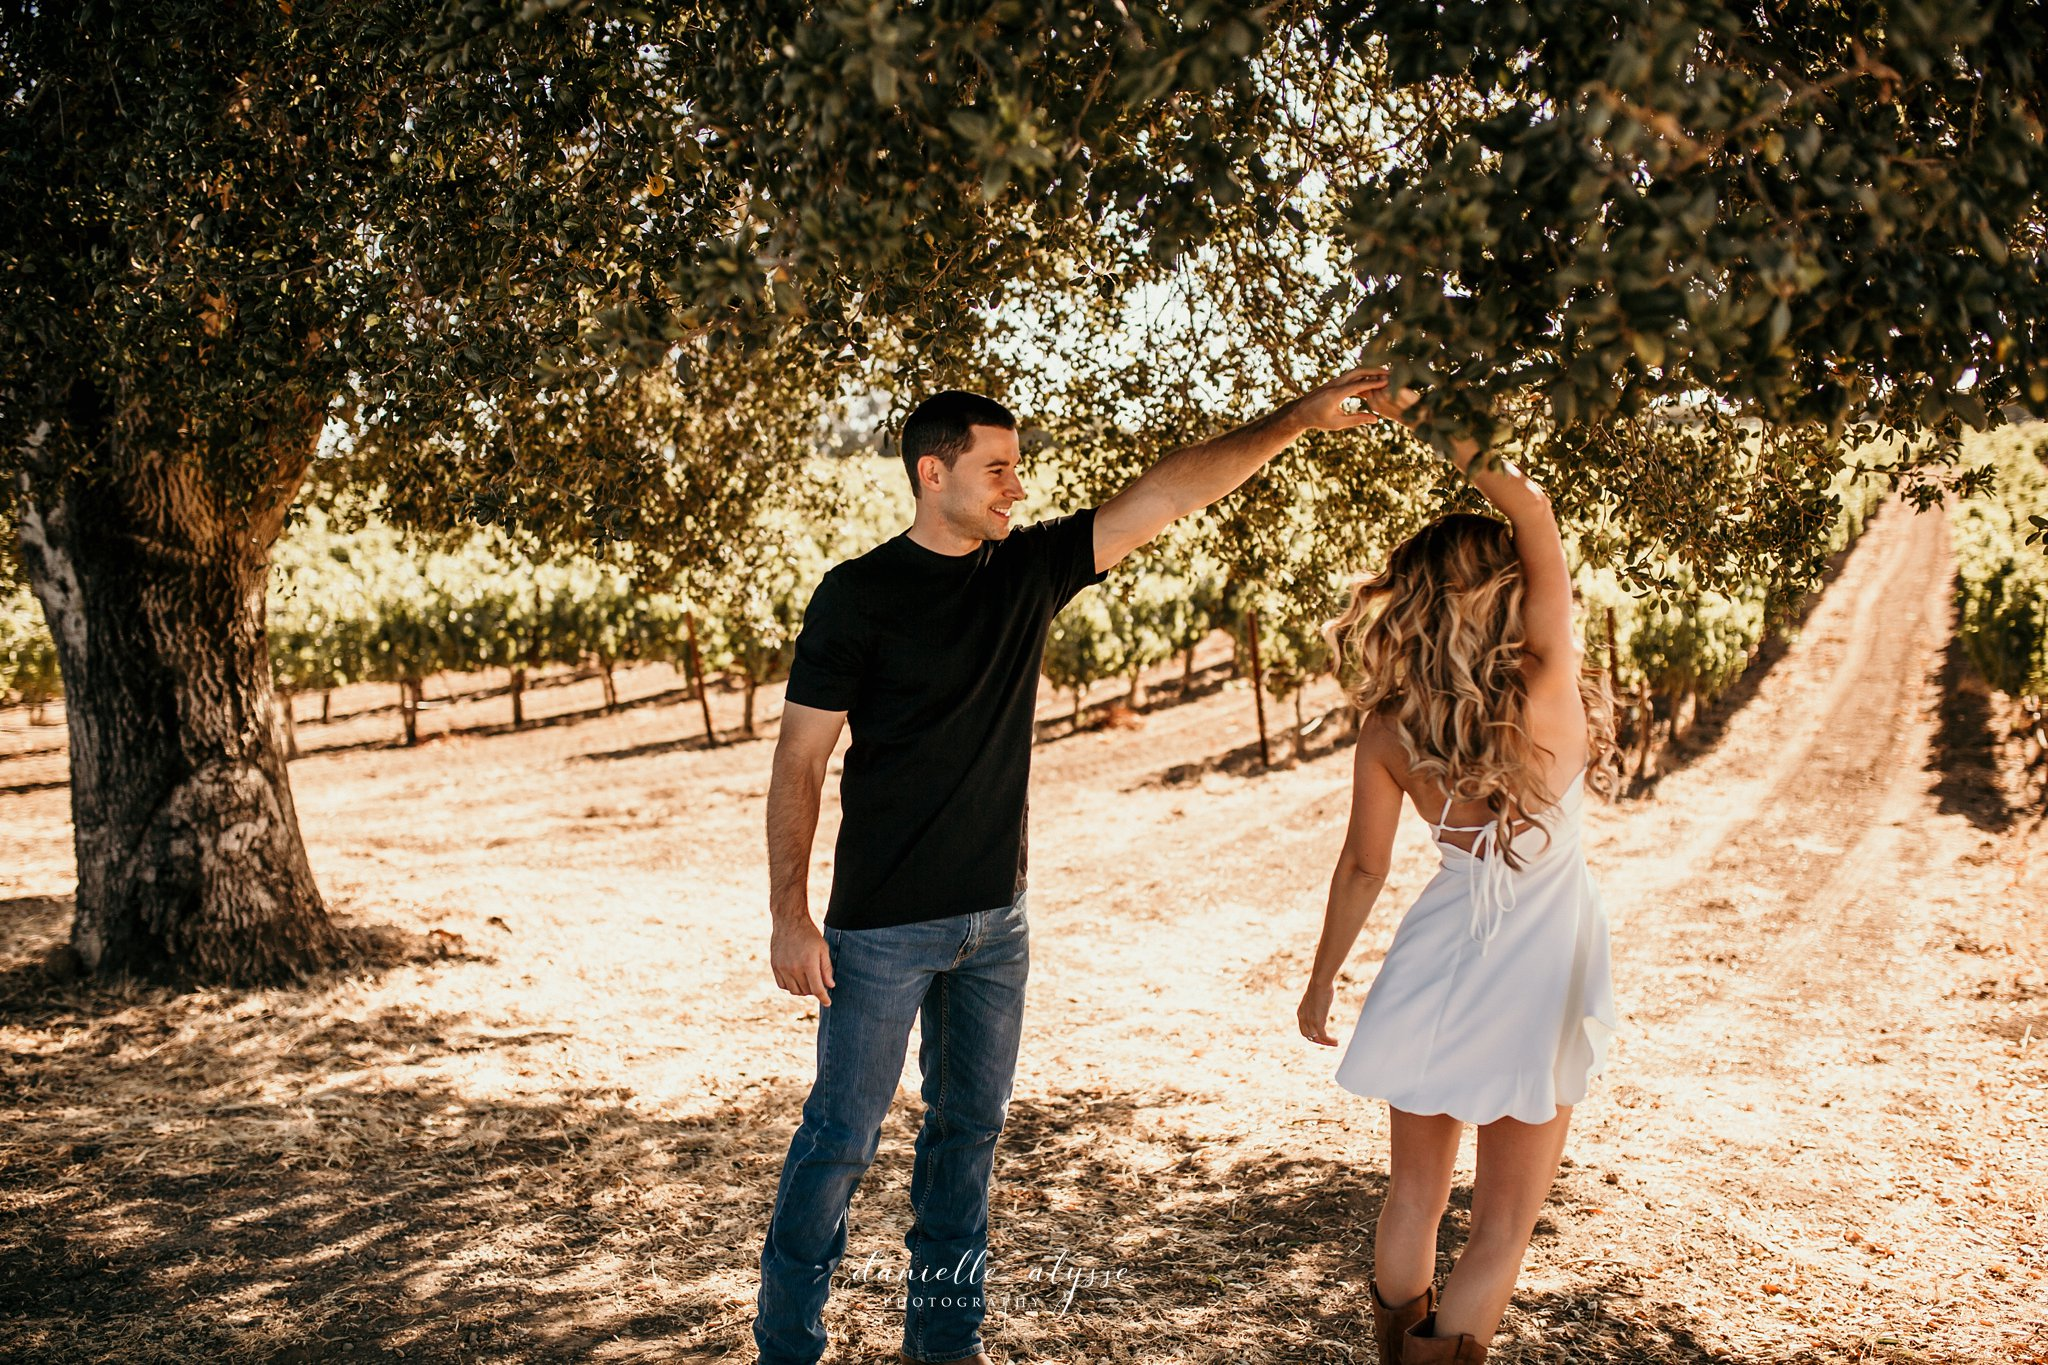 180804_engagement_katie_matt_dillon_beach_napa_danielle_alysse_photography_blog_3_WEB.jpg